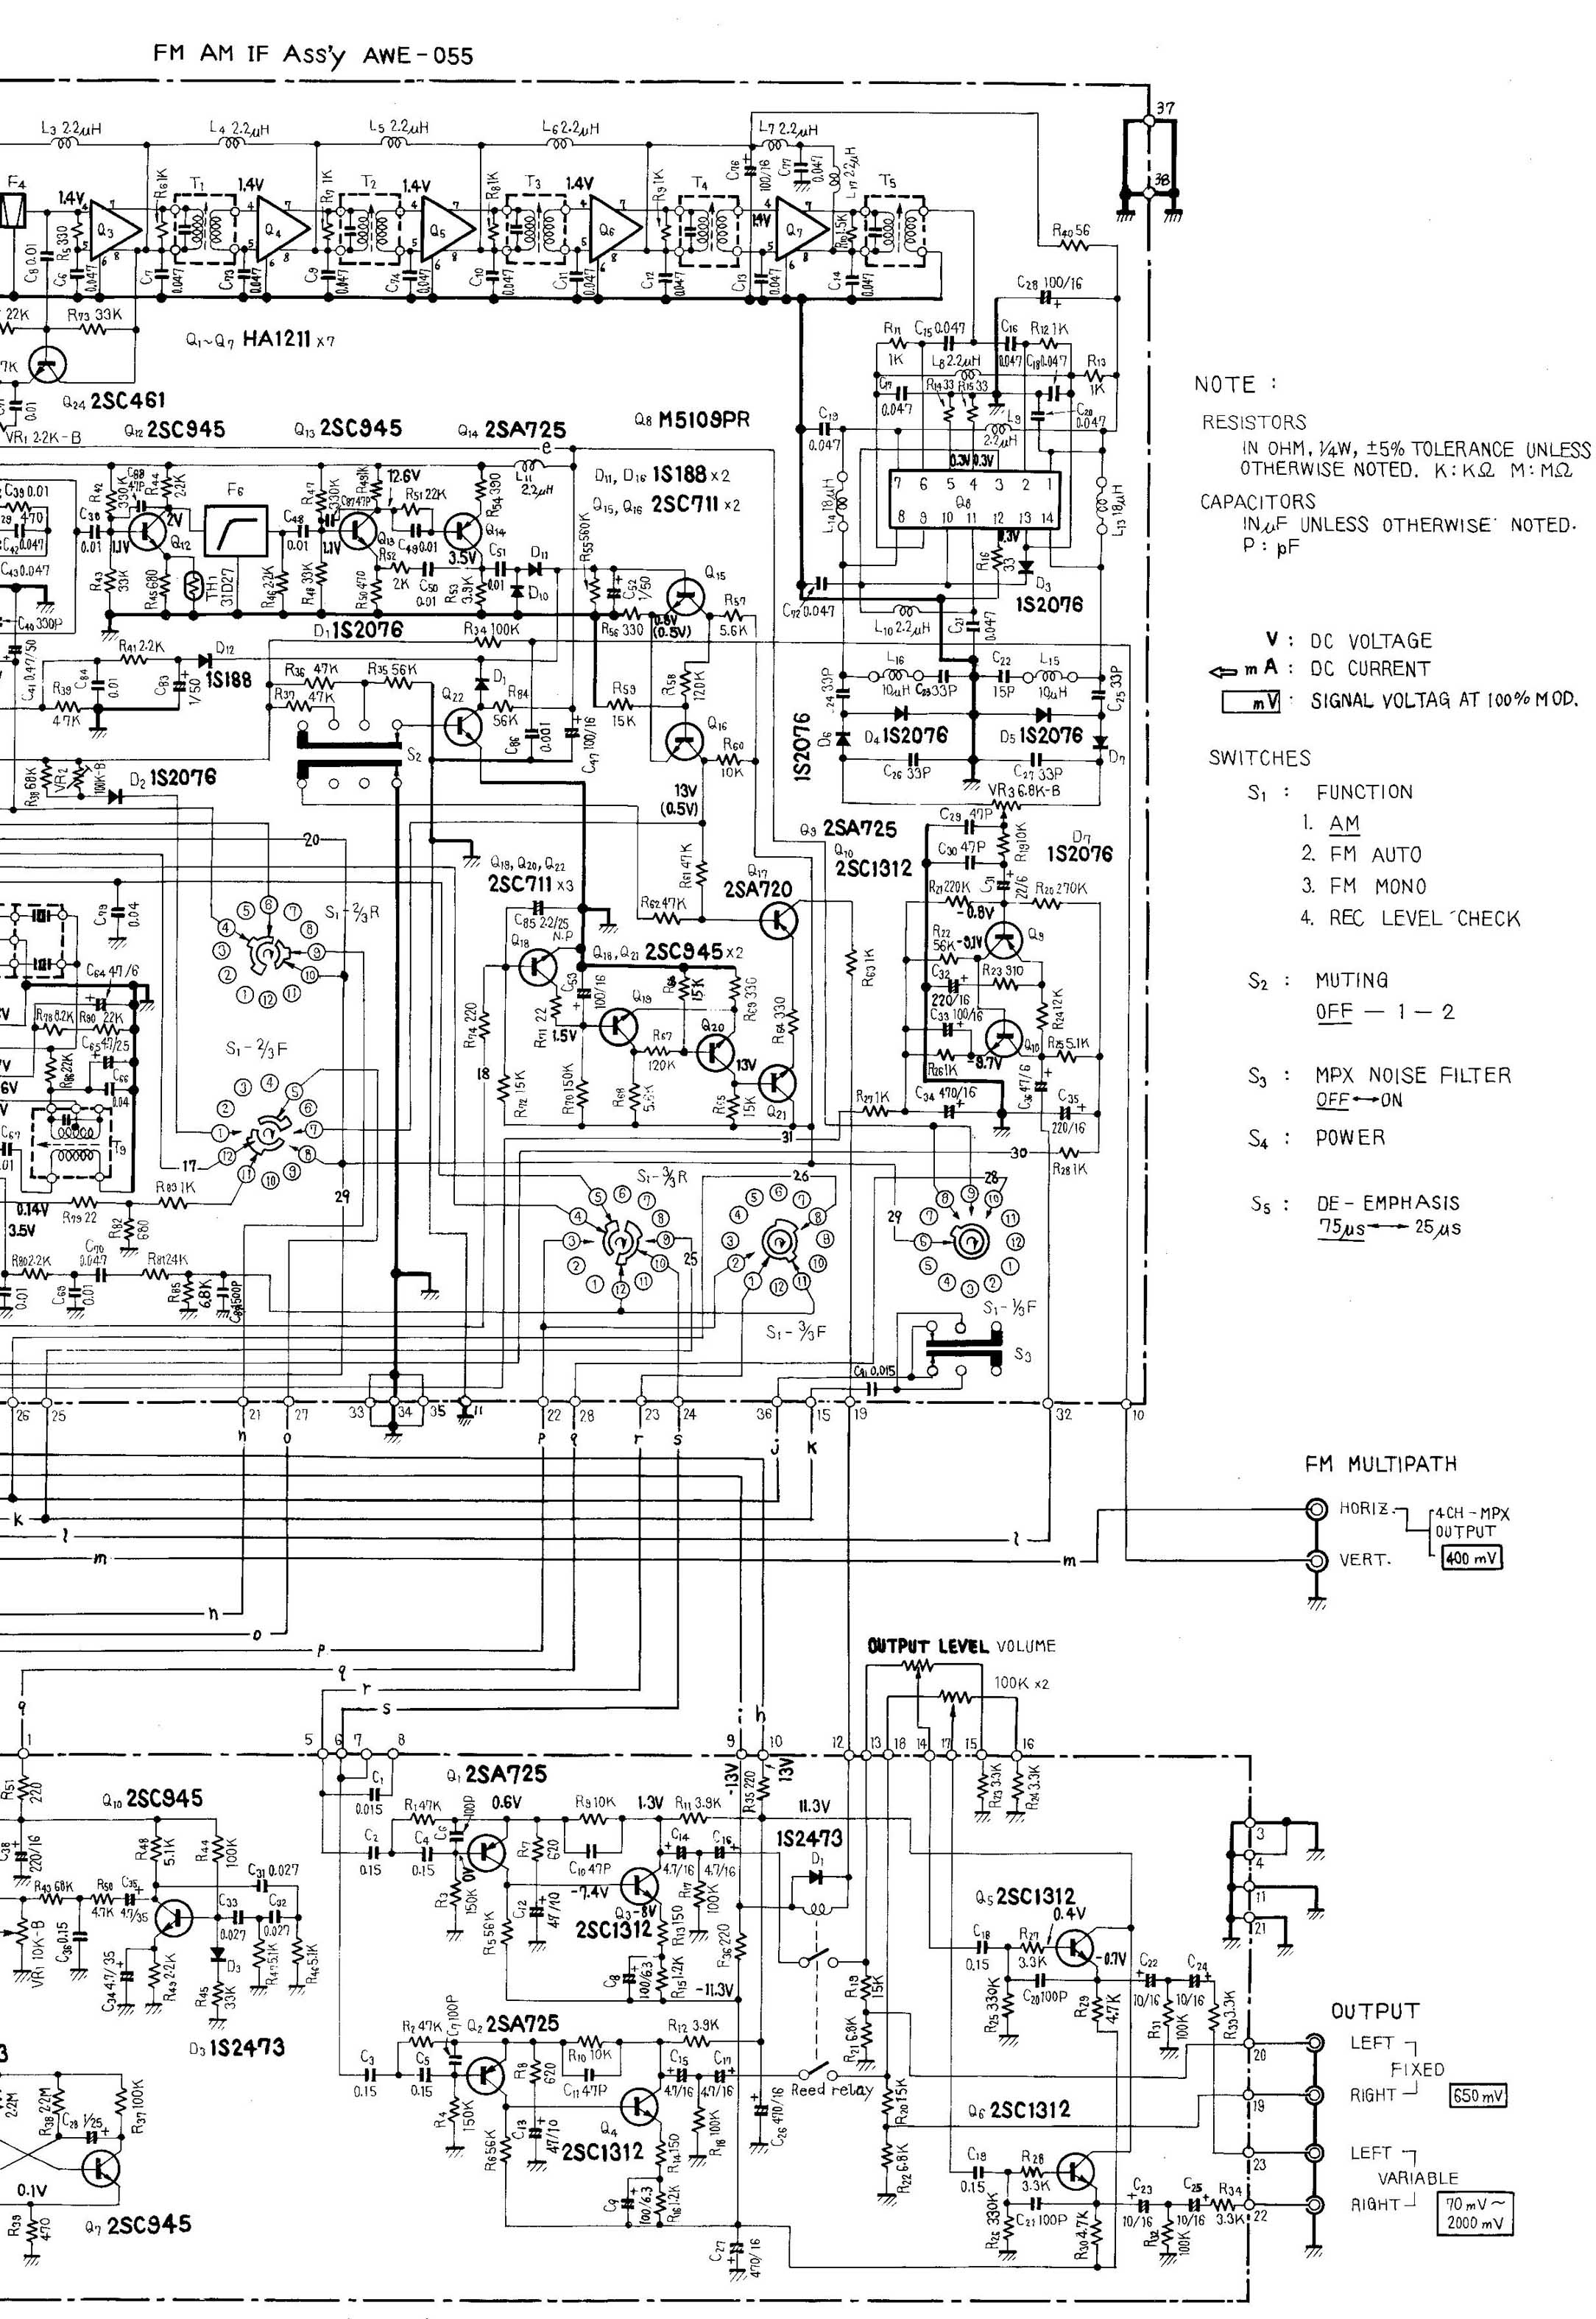 Wiring Diagram For A Technics Equalizer. Diagrams. Auto